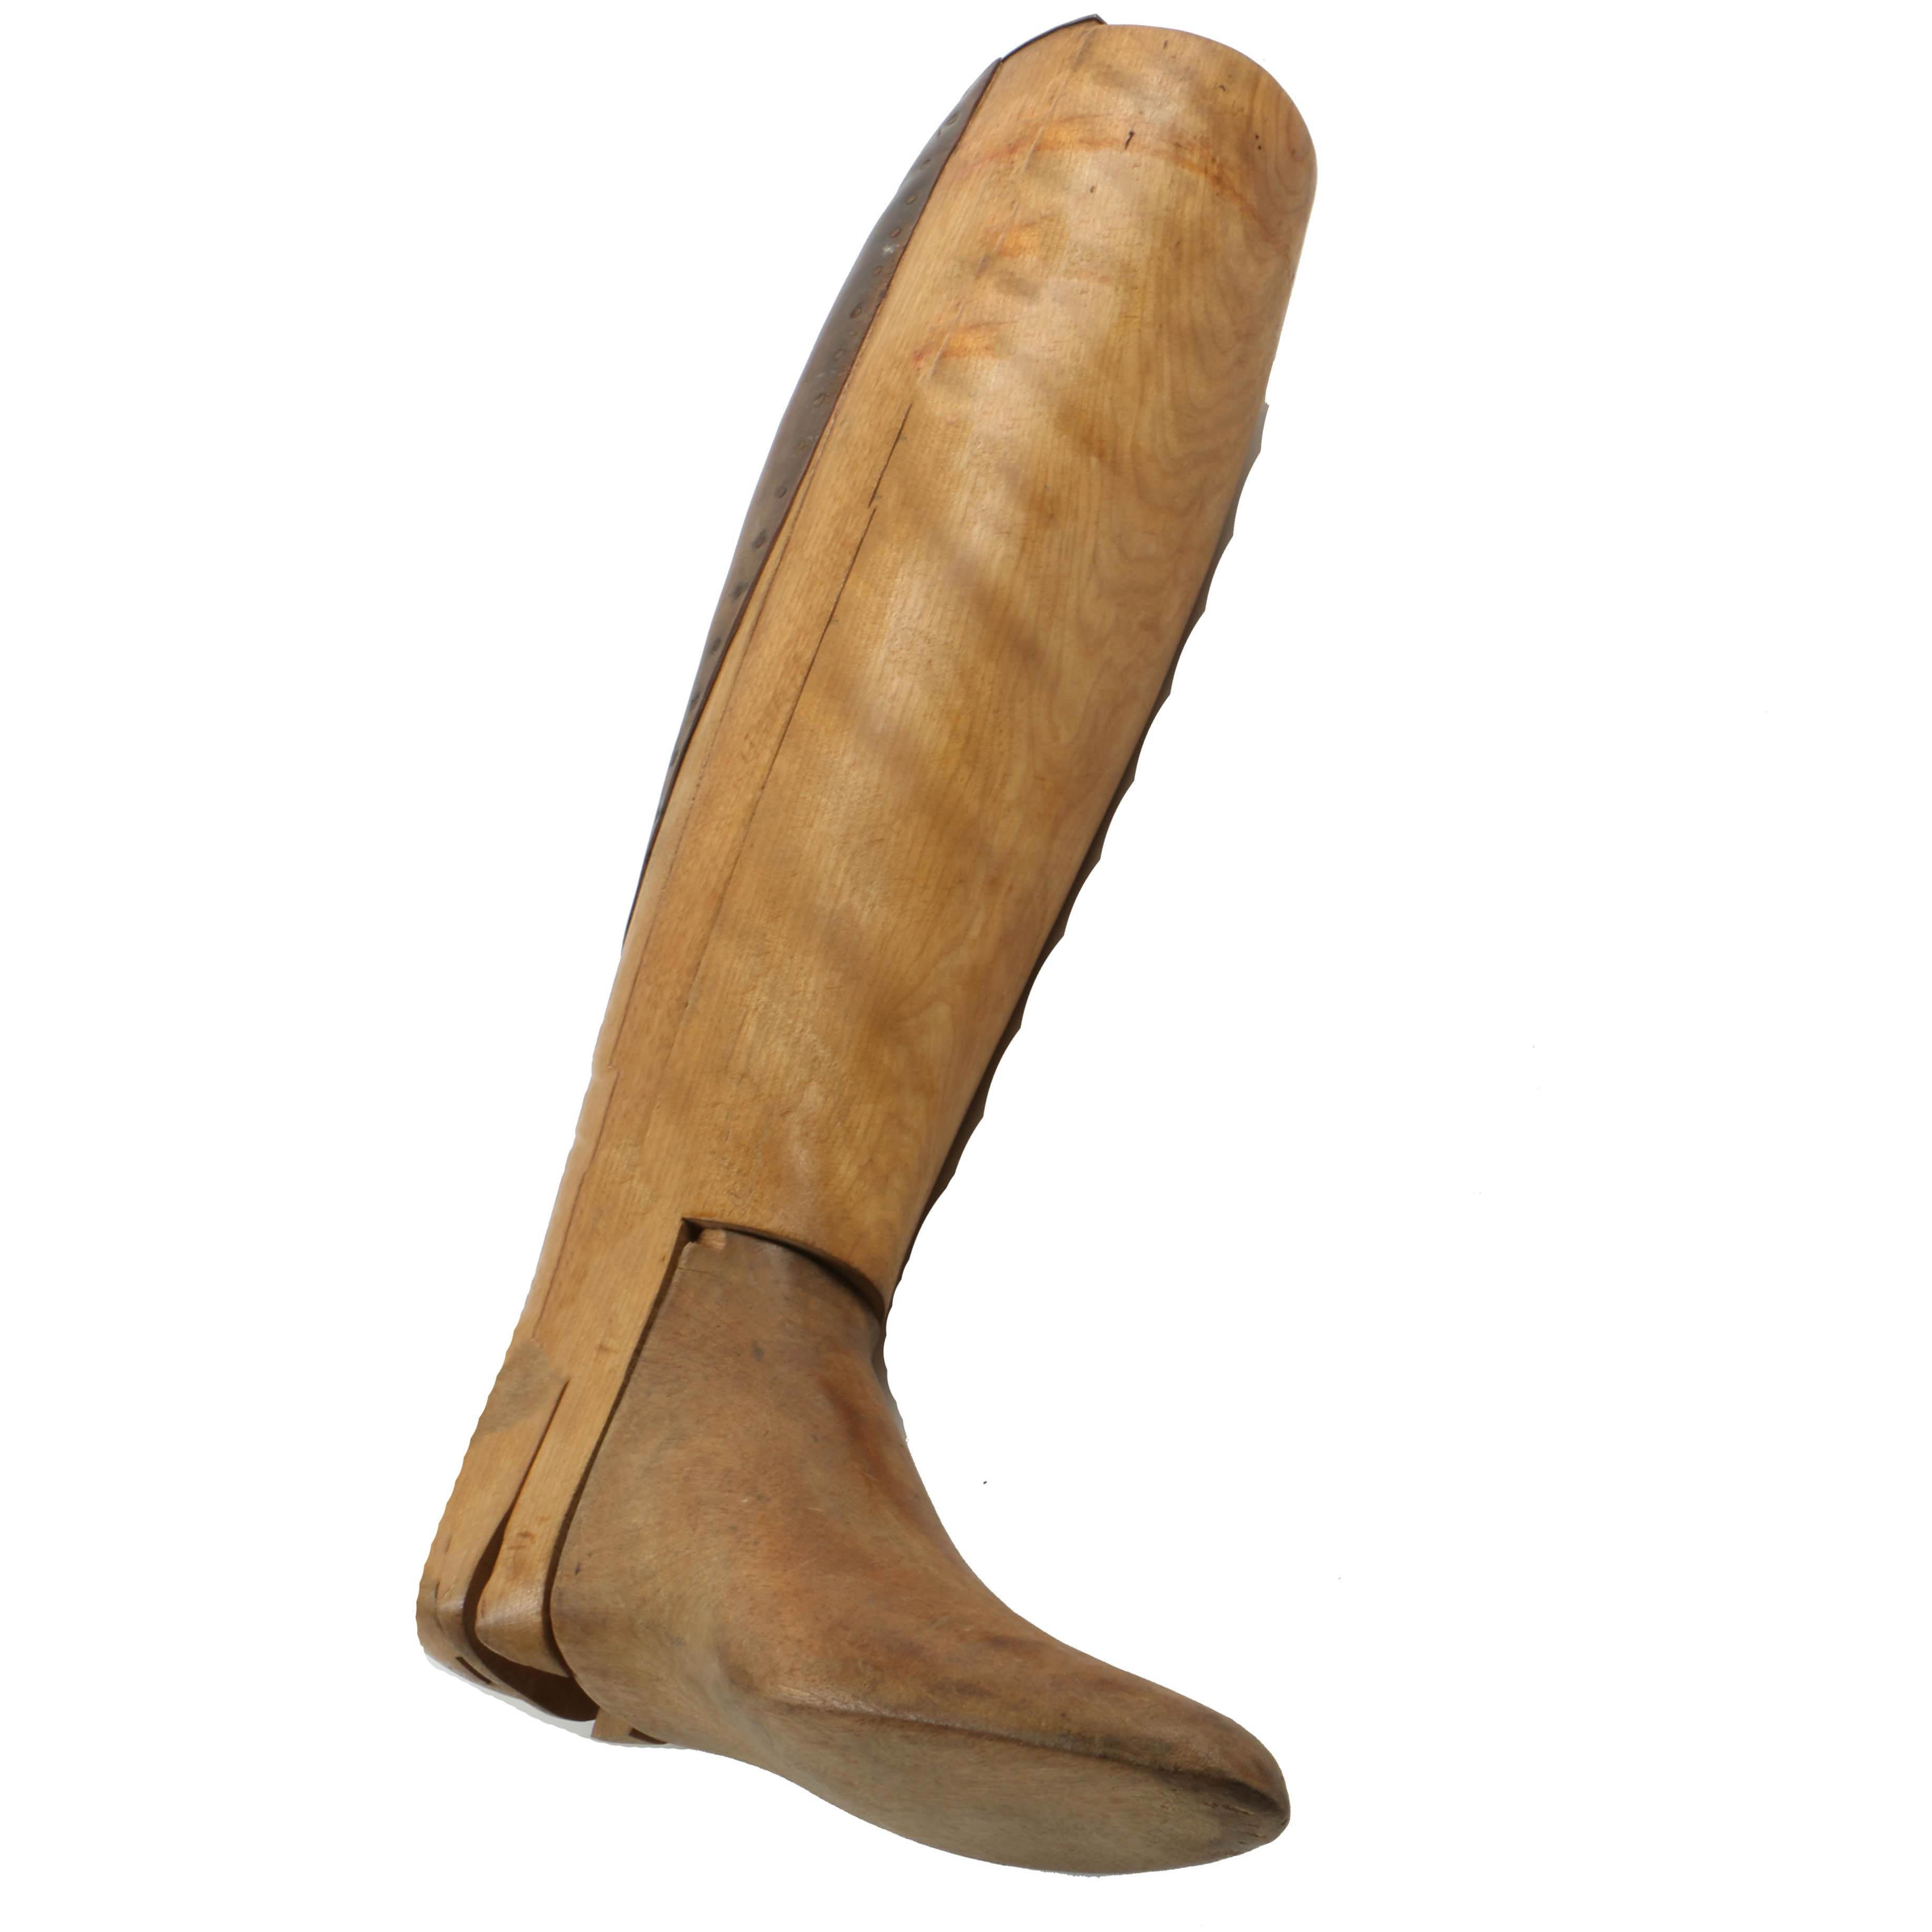 Antique Single Boot Form With Leather Calf